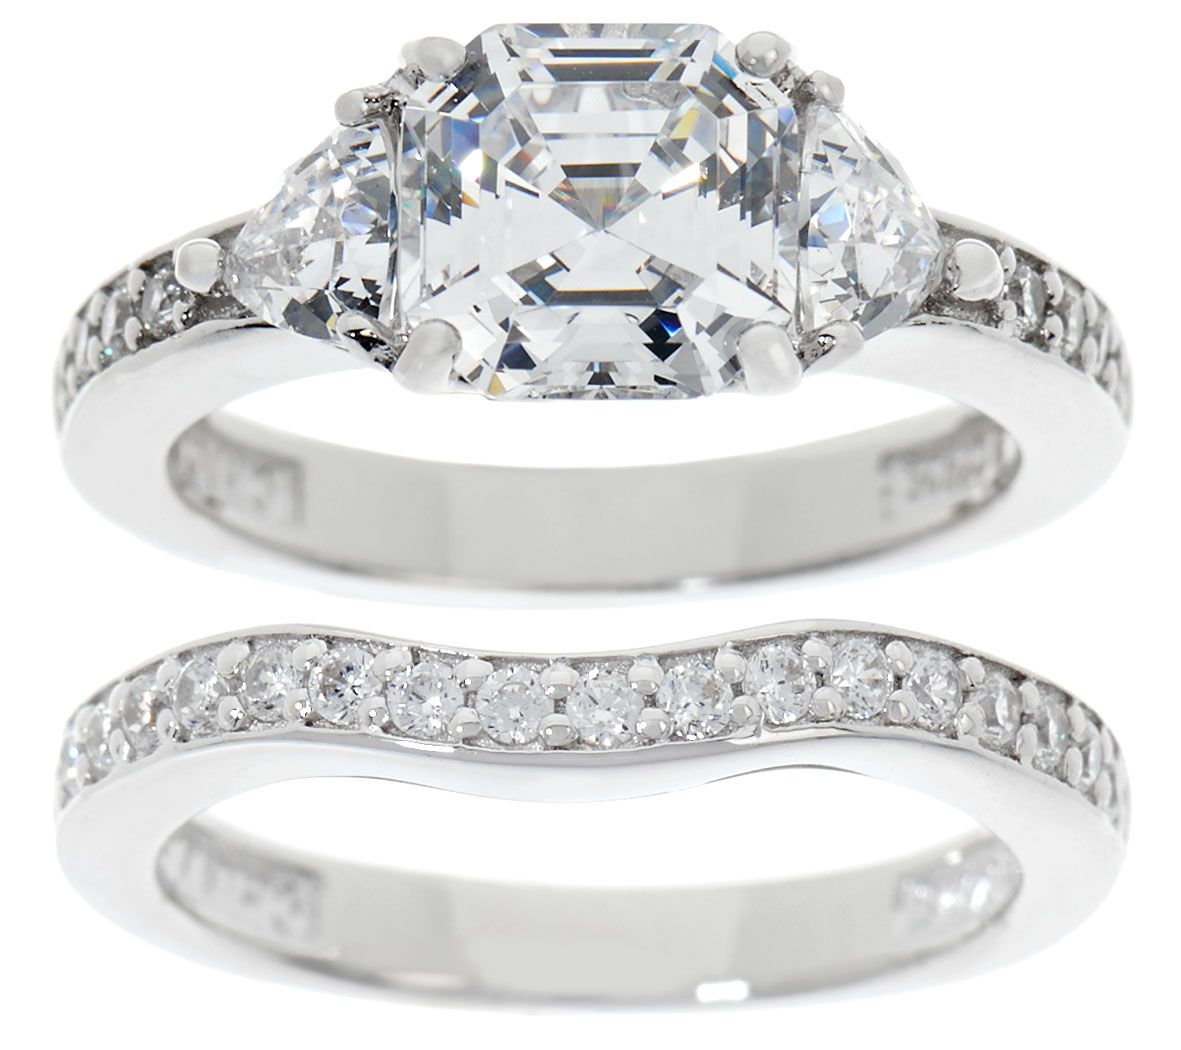 Diamonique 2 90 Cttw Asscher Bridal Ring Set Platinum